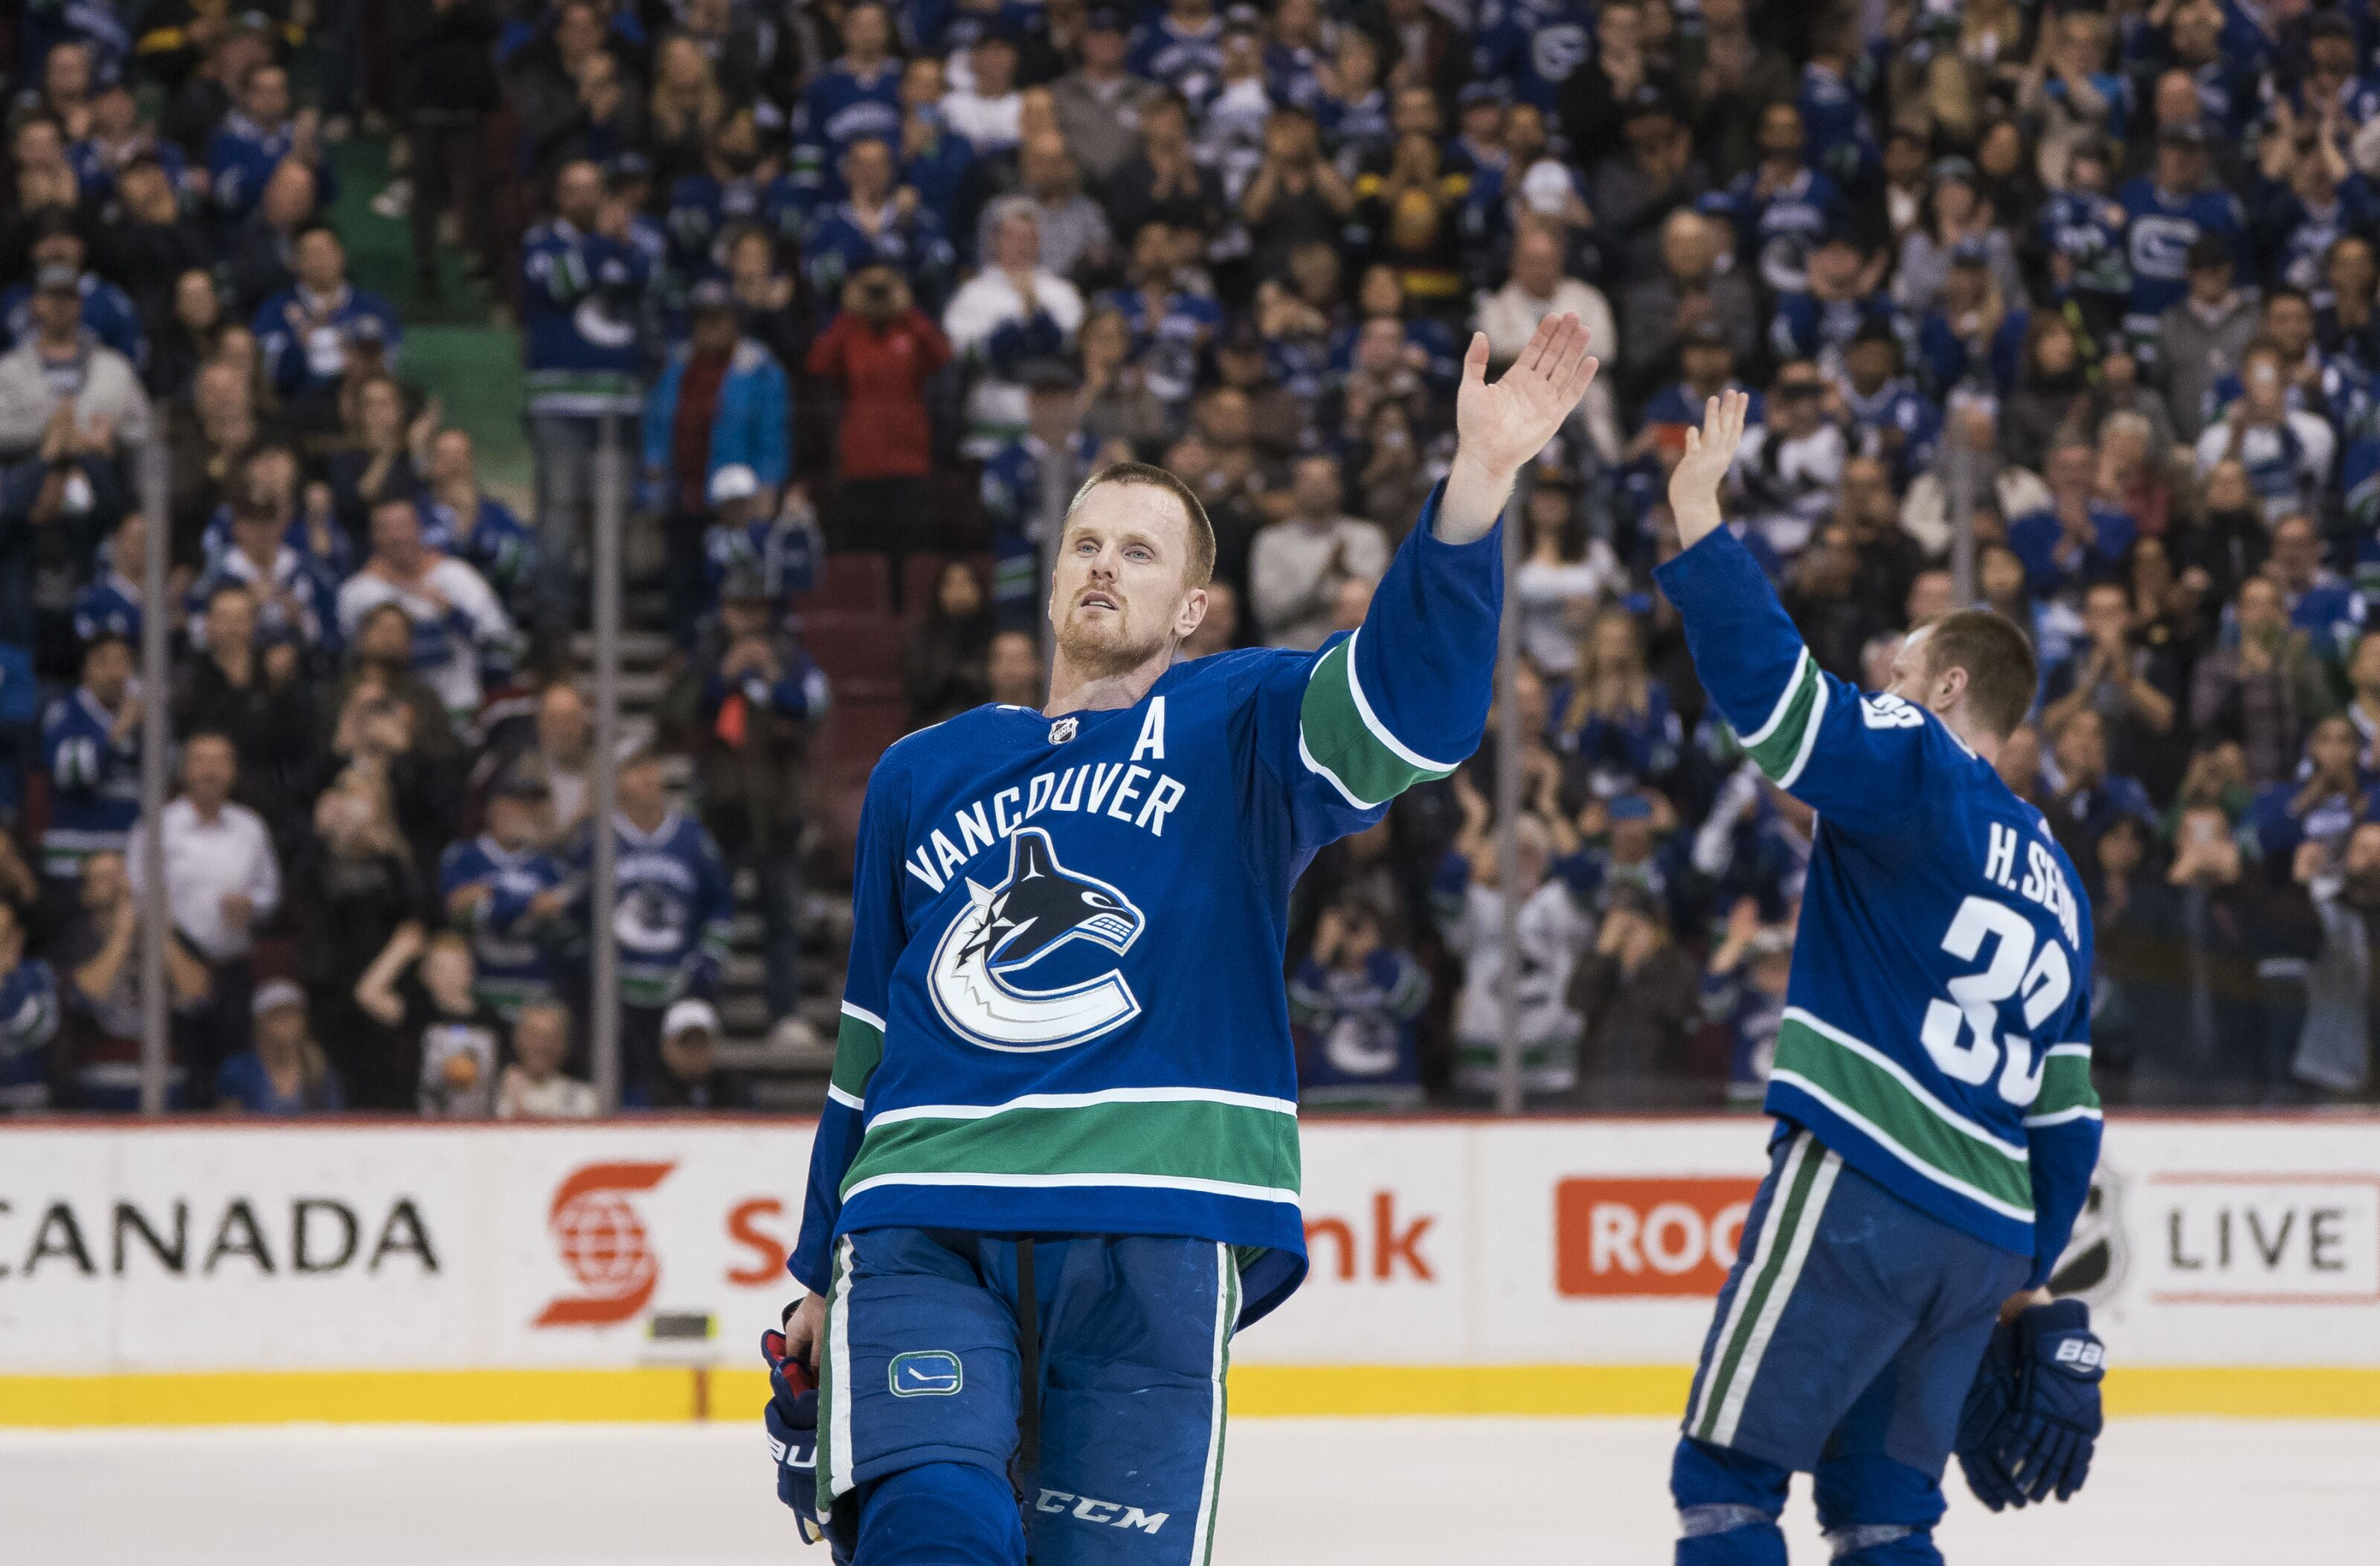 Vancouver Canucks: What if the Sedins didn't retire?